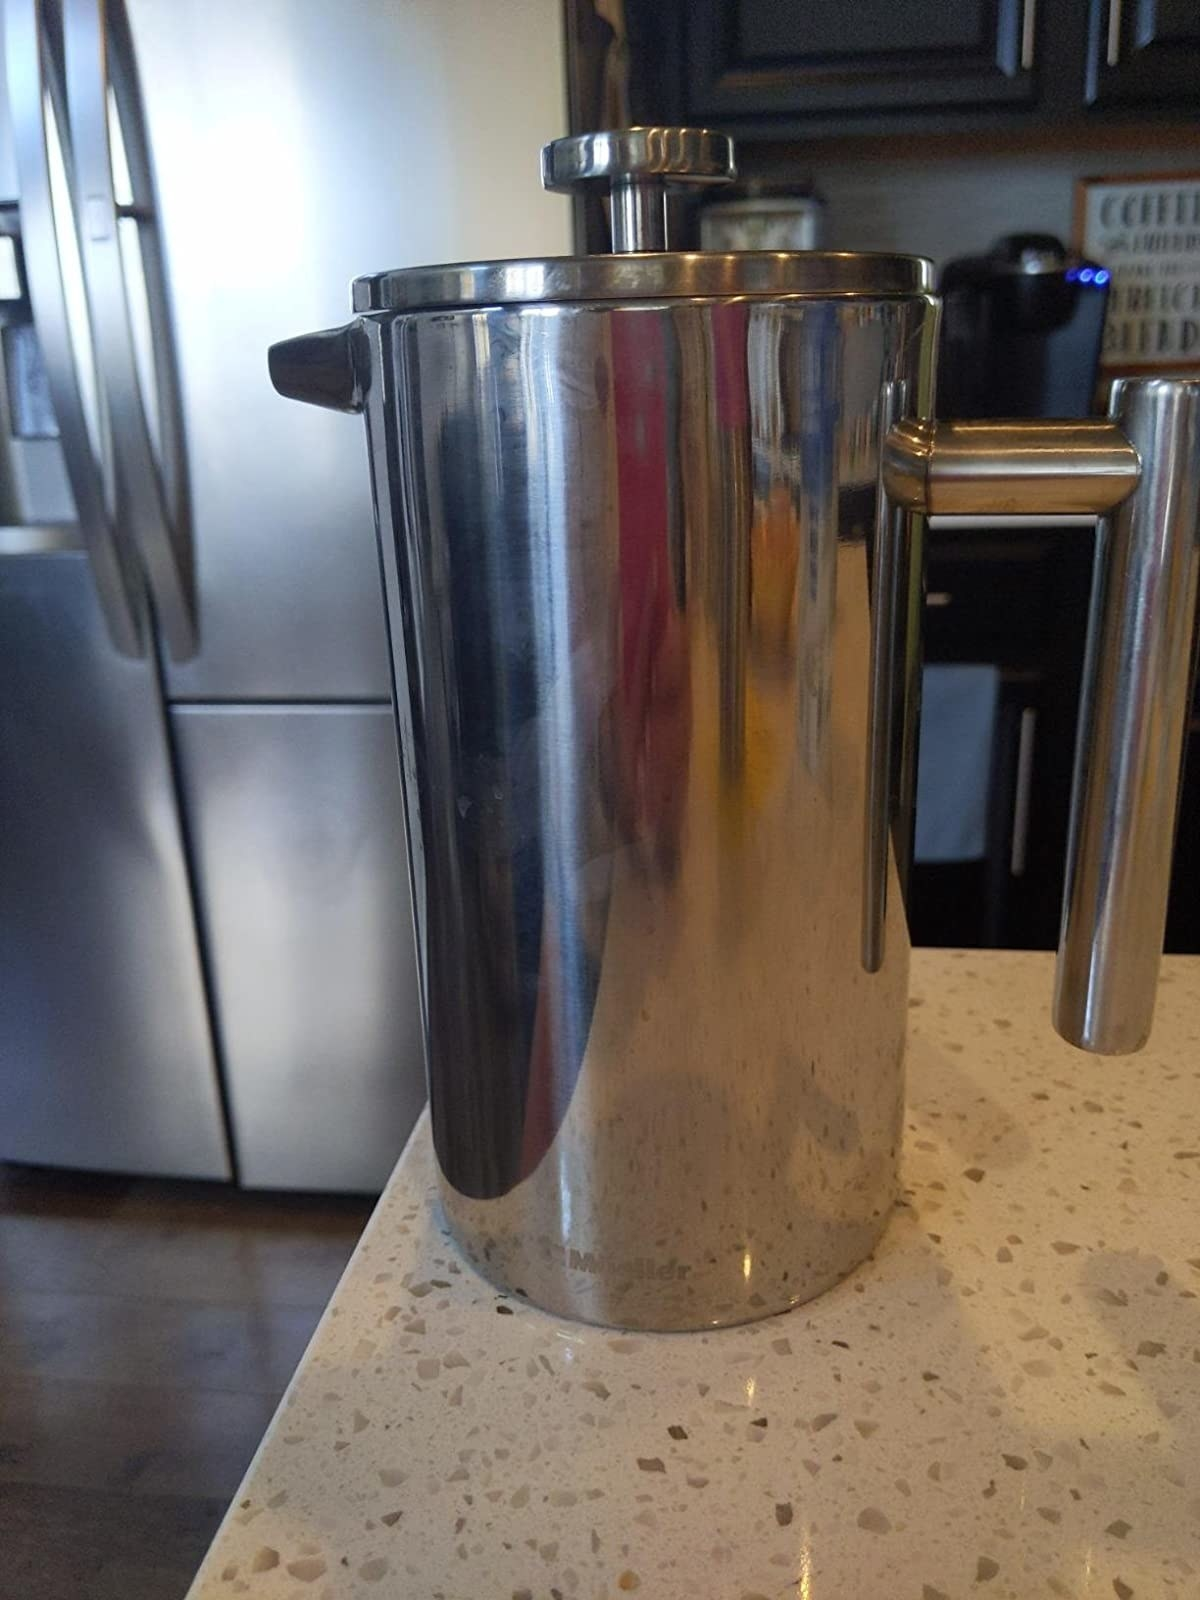 A reviewer photo of the French press, which is all stainless steel